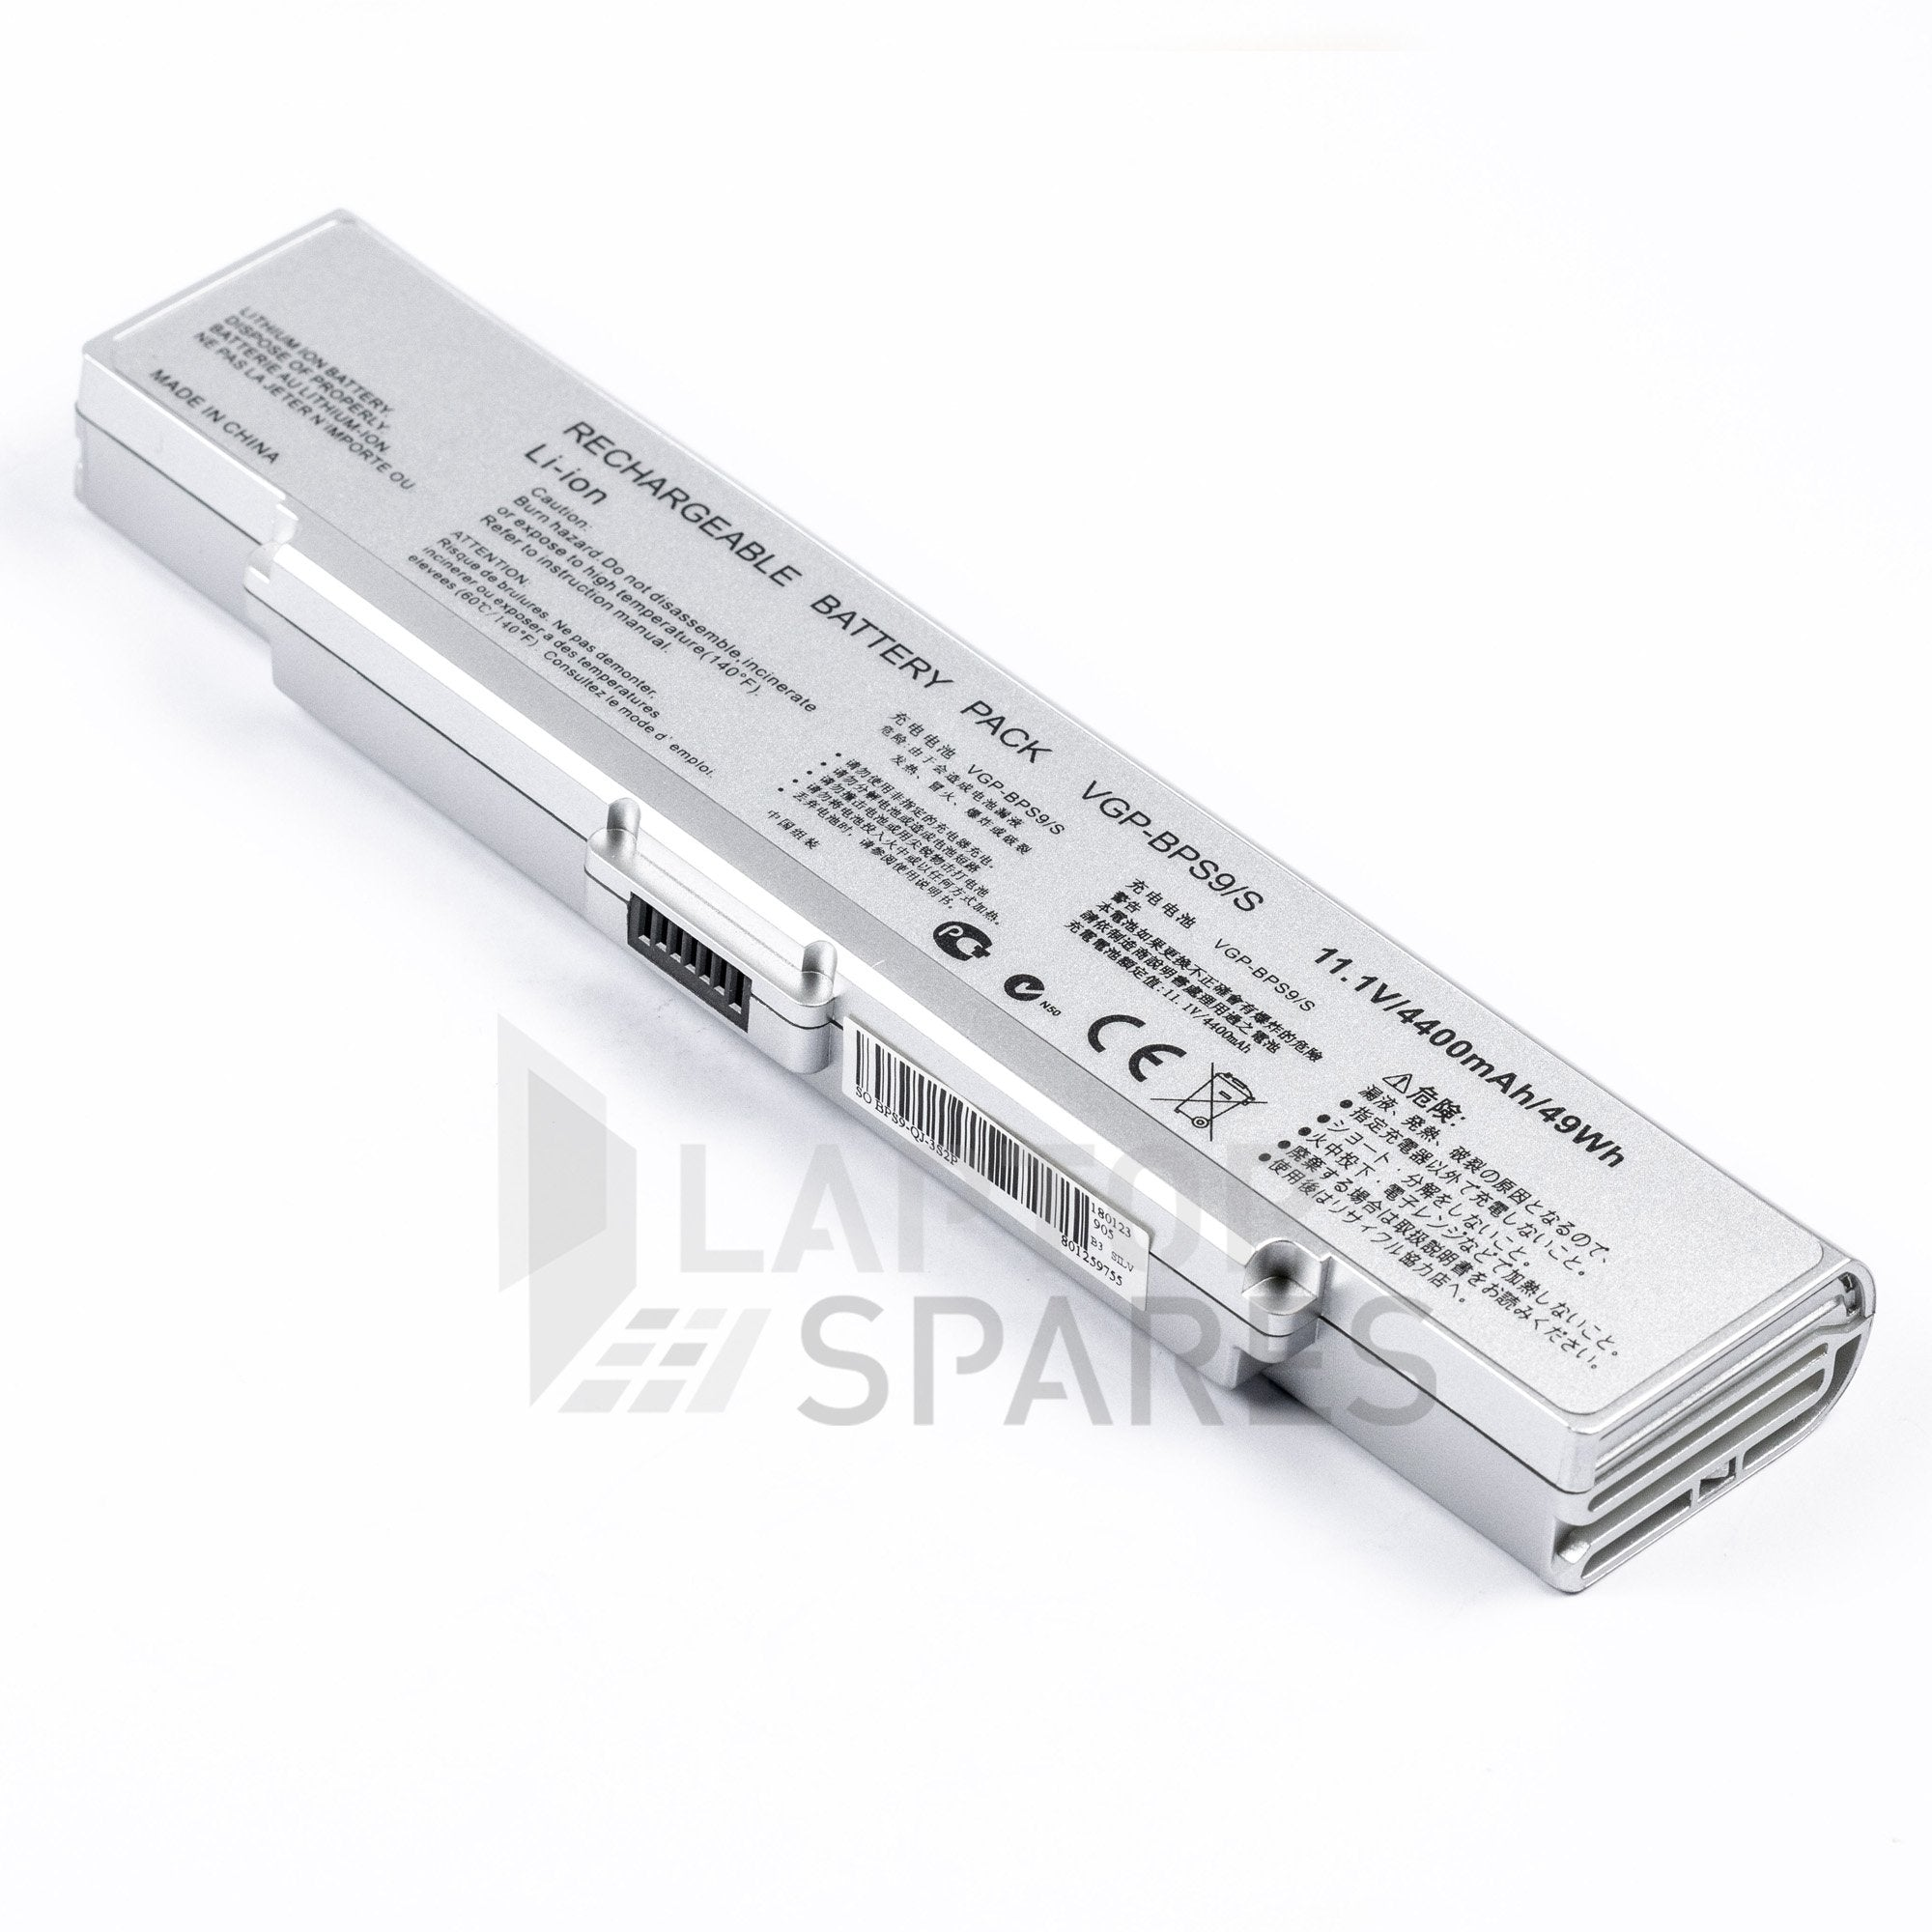 Sony VAIO VGN-NR50B 4400mAh 6 Cell Battery